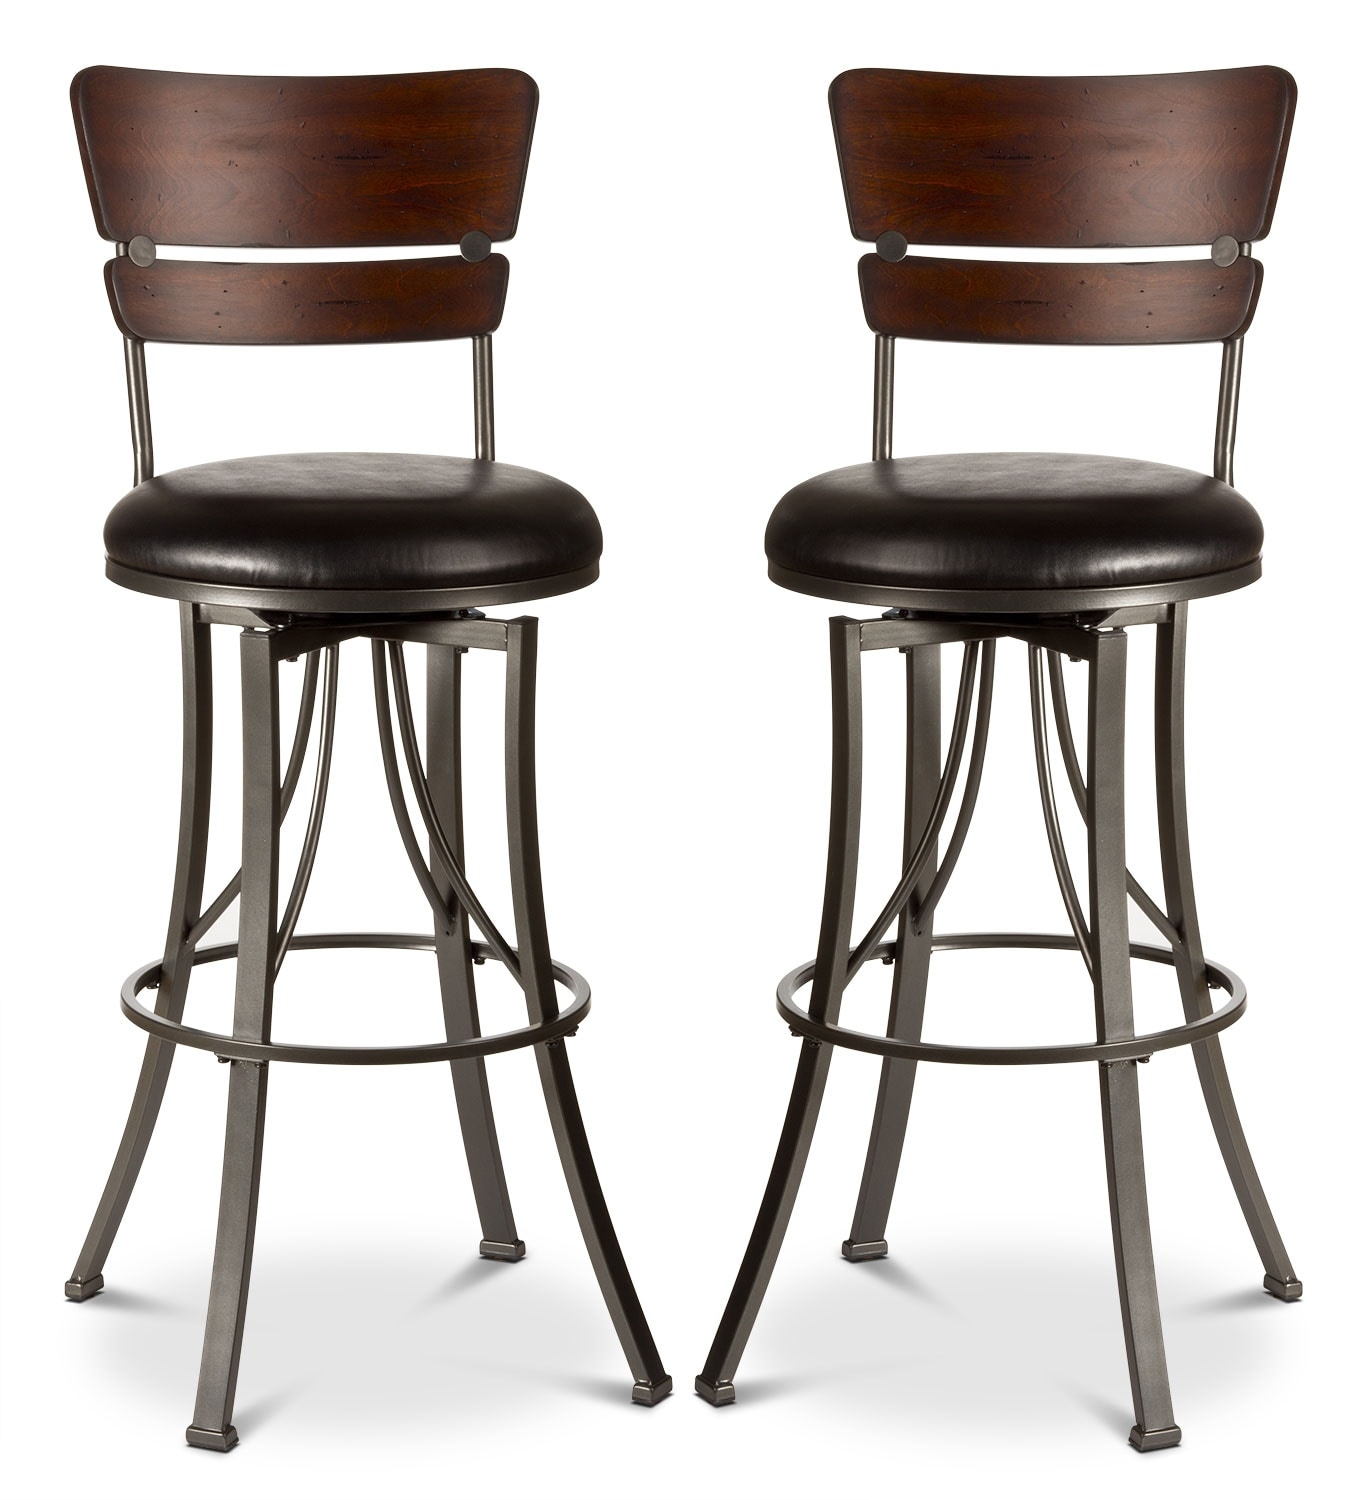 Santa monica counter height swivel stool set of 2 the brick - Average height of bar stools ...